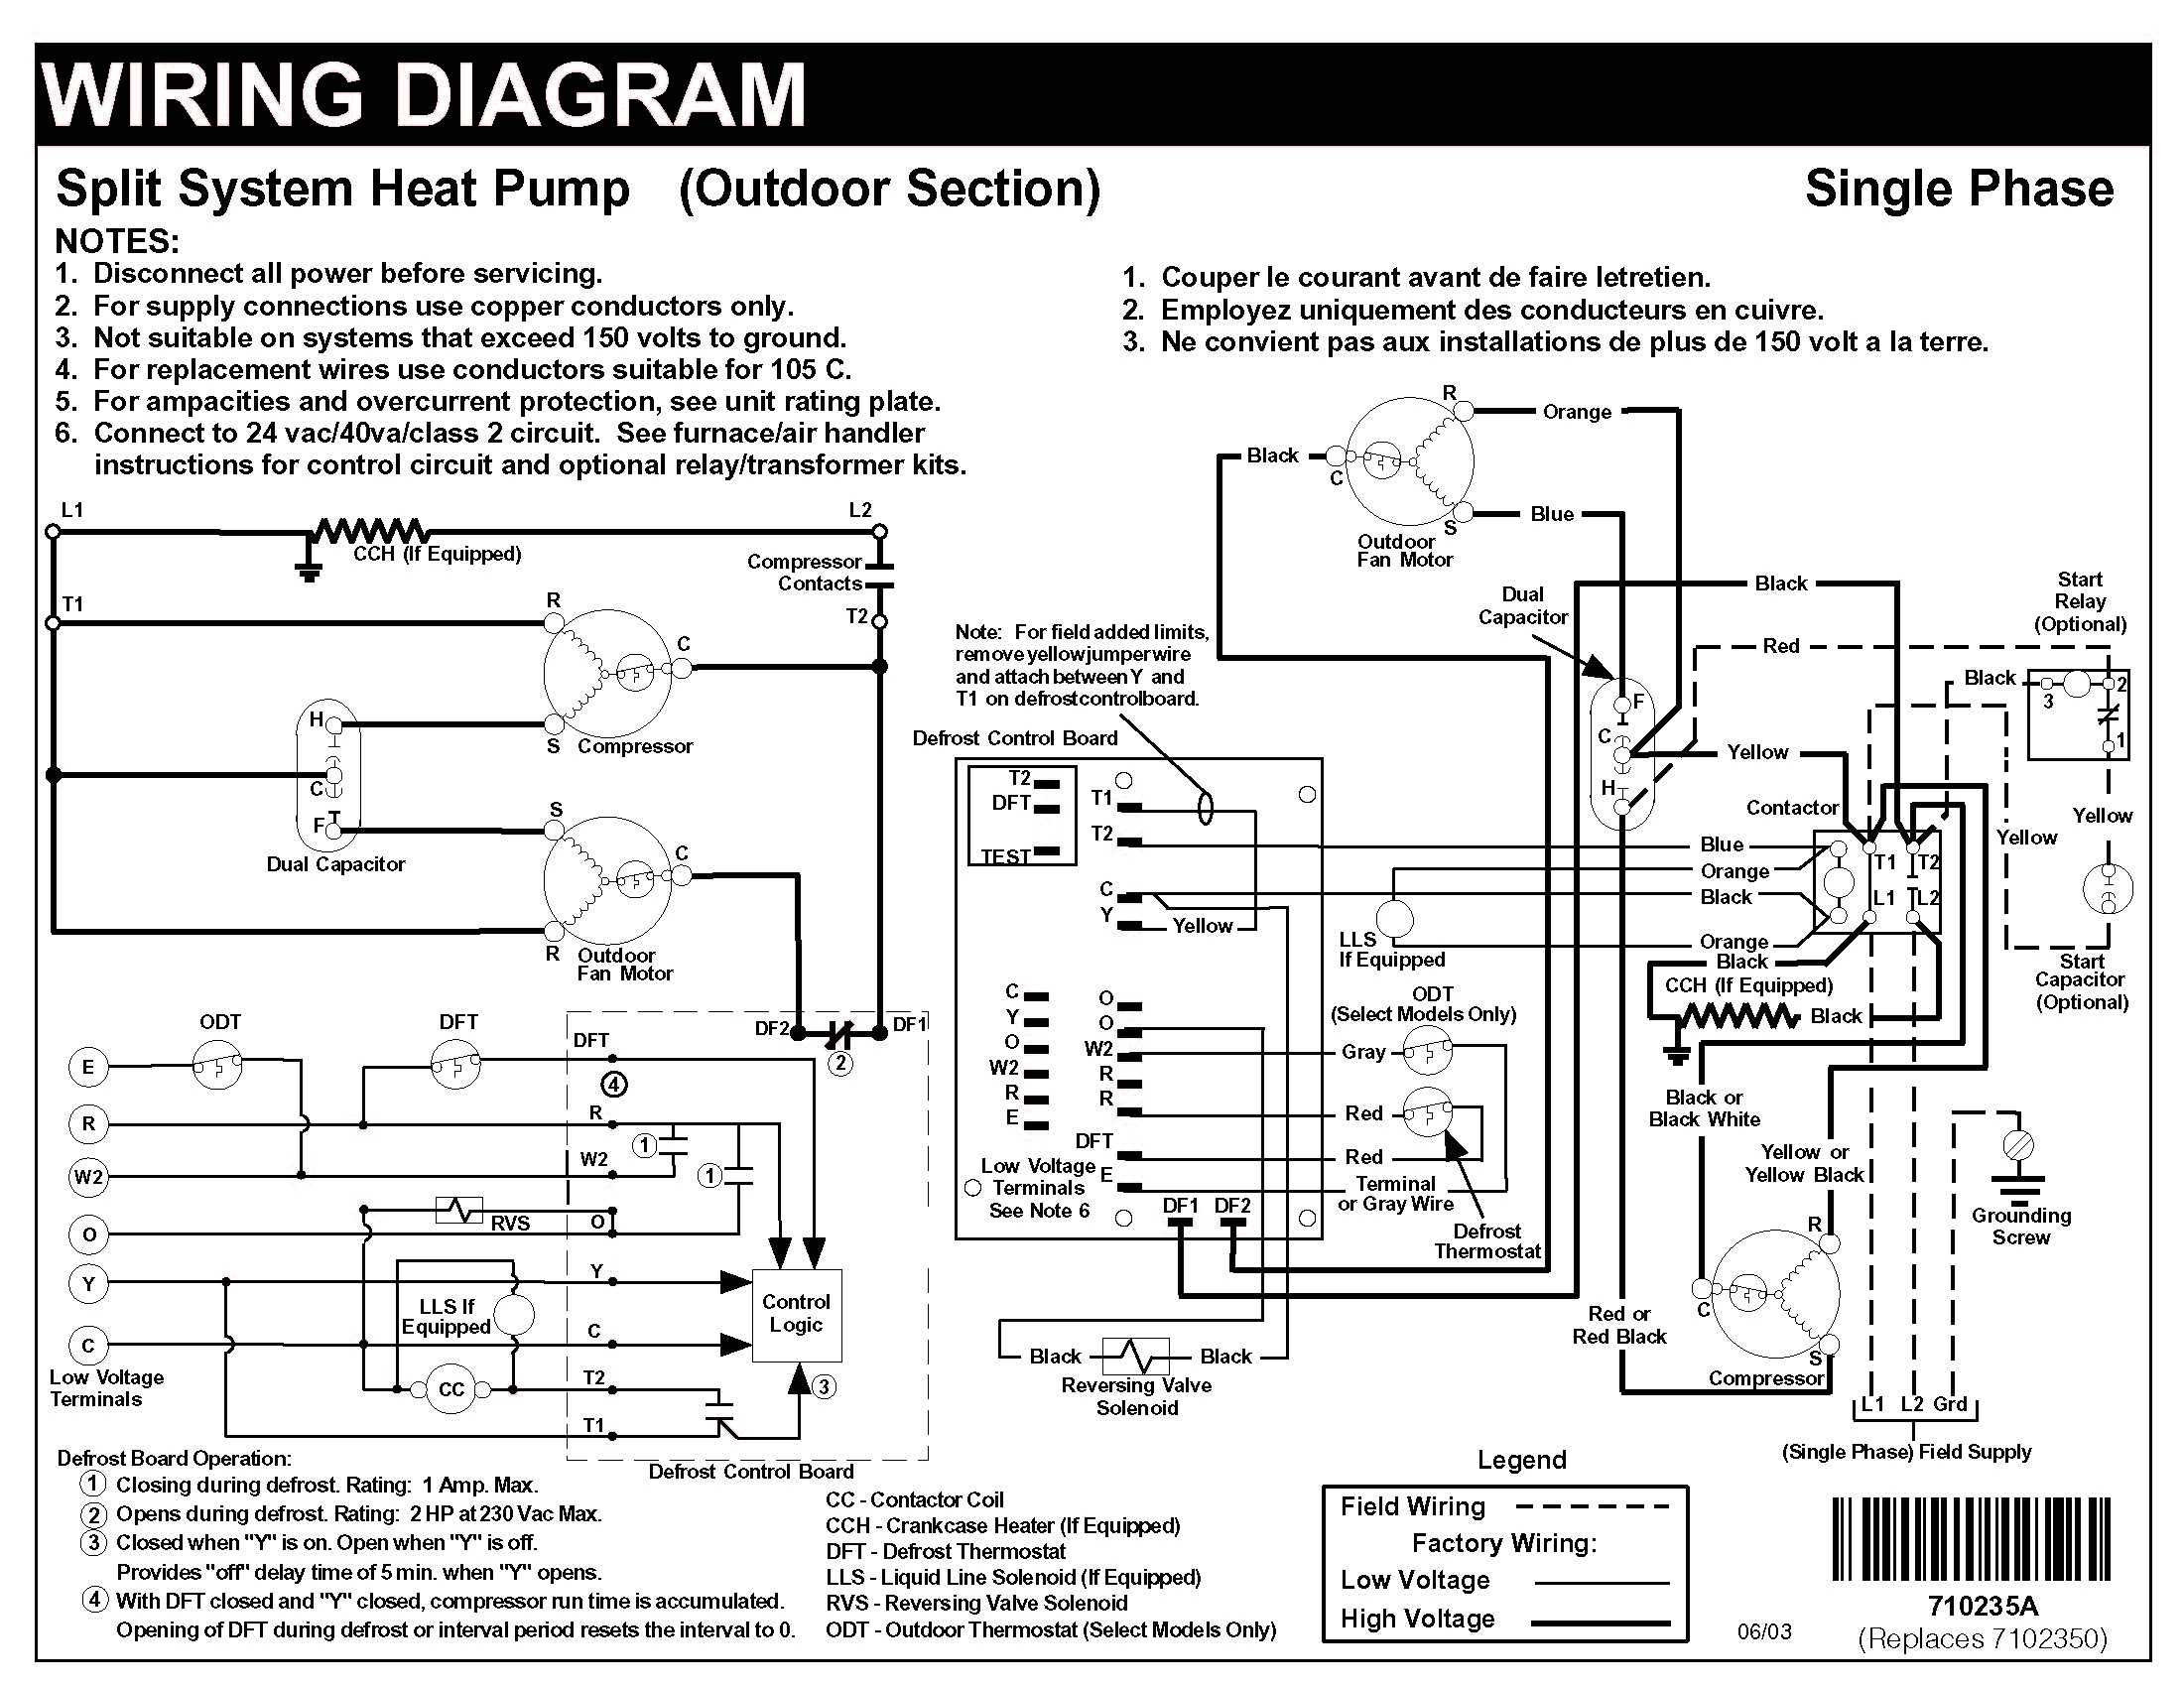 intertherm heat pump wiring diagram Collection-Nordyne Ac Wiring Diagram Fresh Heat Pump Air Conditioner nordyne Heat Pump thermostat Wiring 20-e